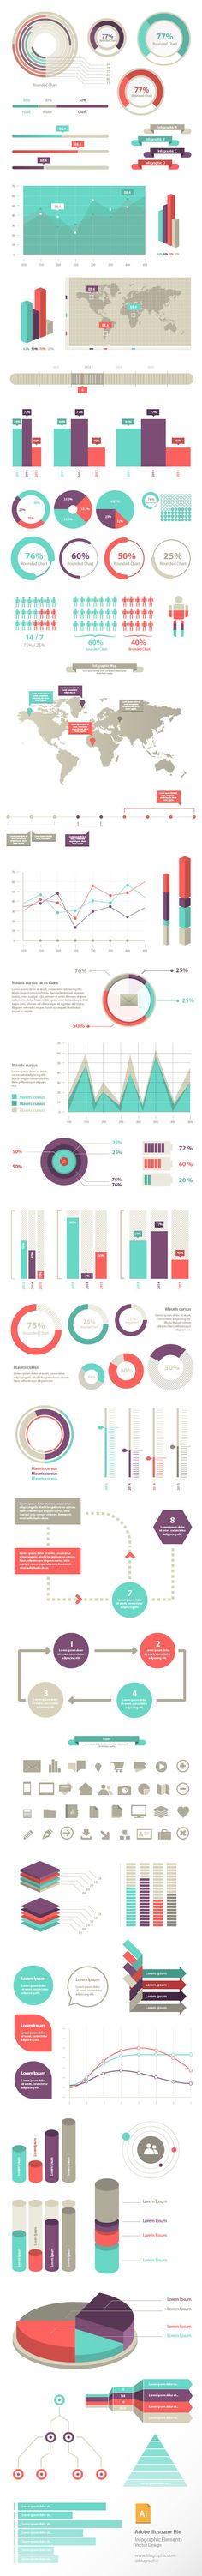 100+ Infographic Elements - Freebies - Fribly